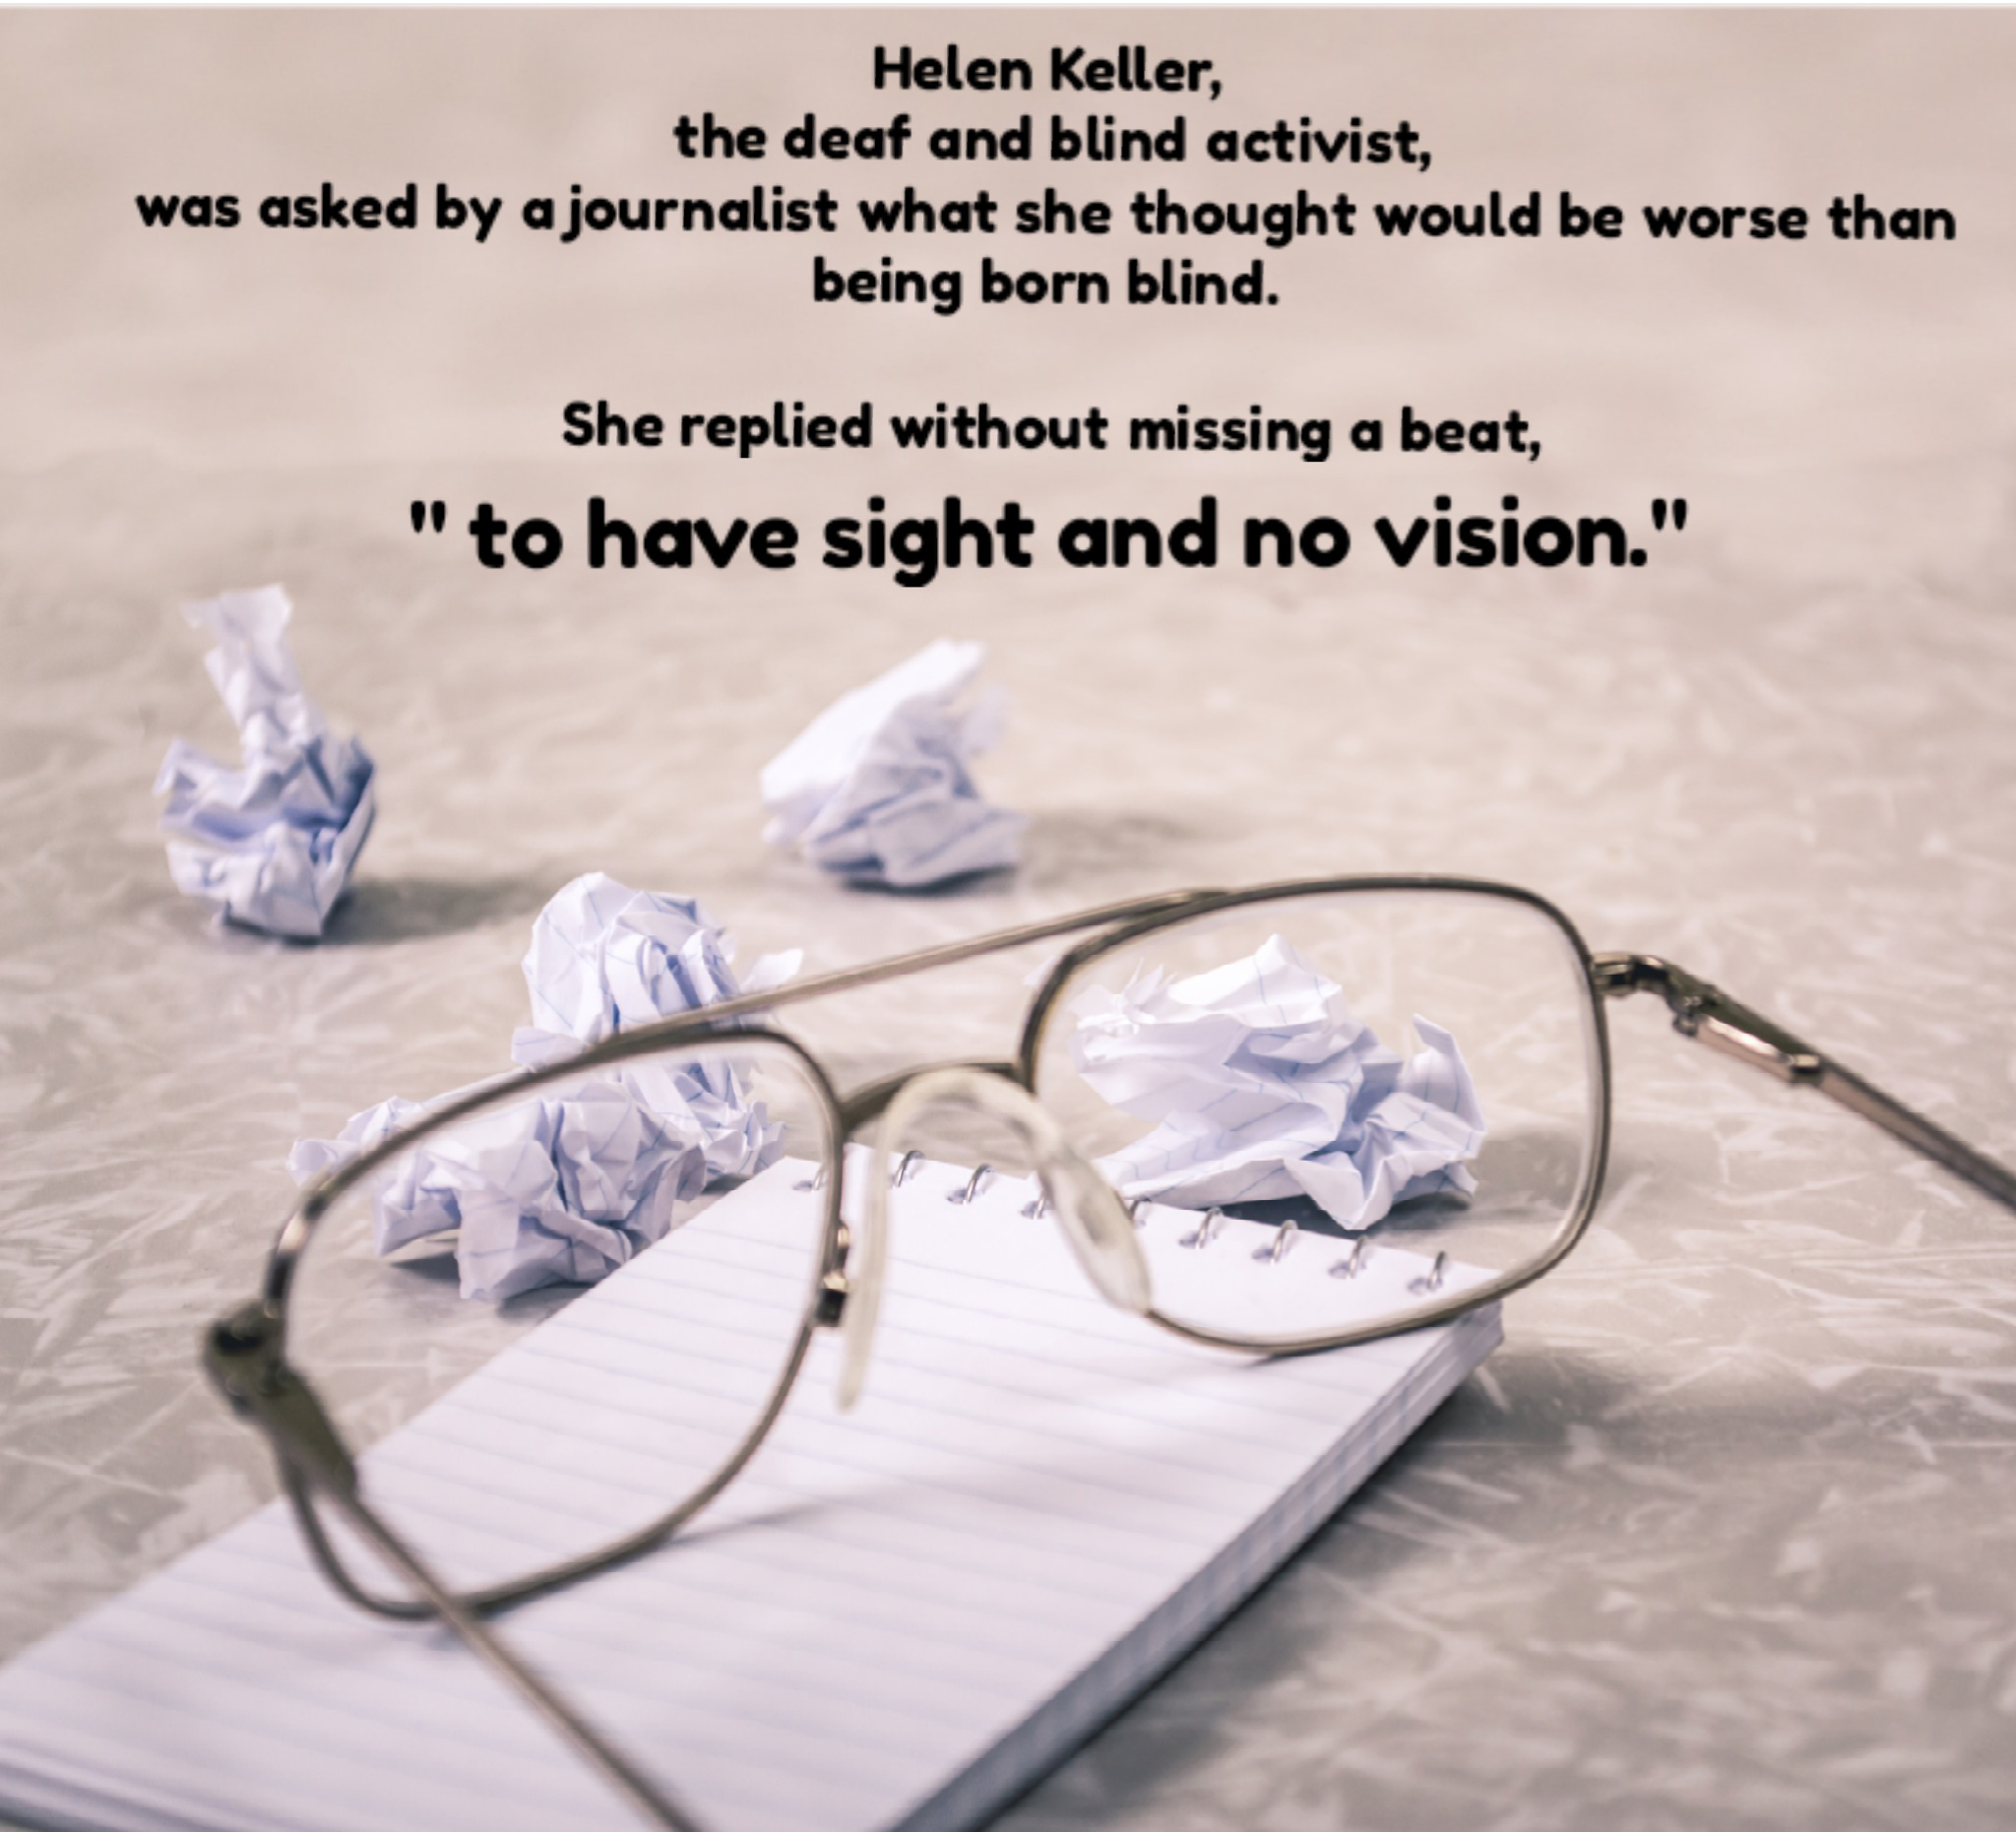 Helen Keller quote--Only worse than being born blind would be to have sight and no vision. Image of eyeglass a writing pad and pen with scrumpled pieces of paper.